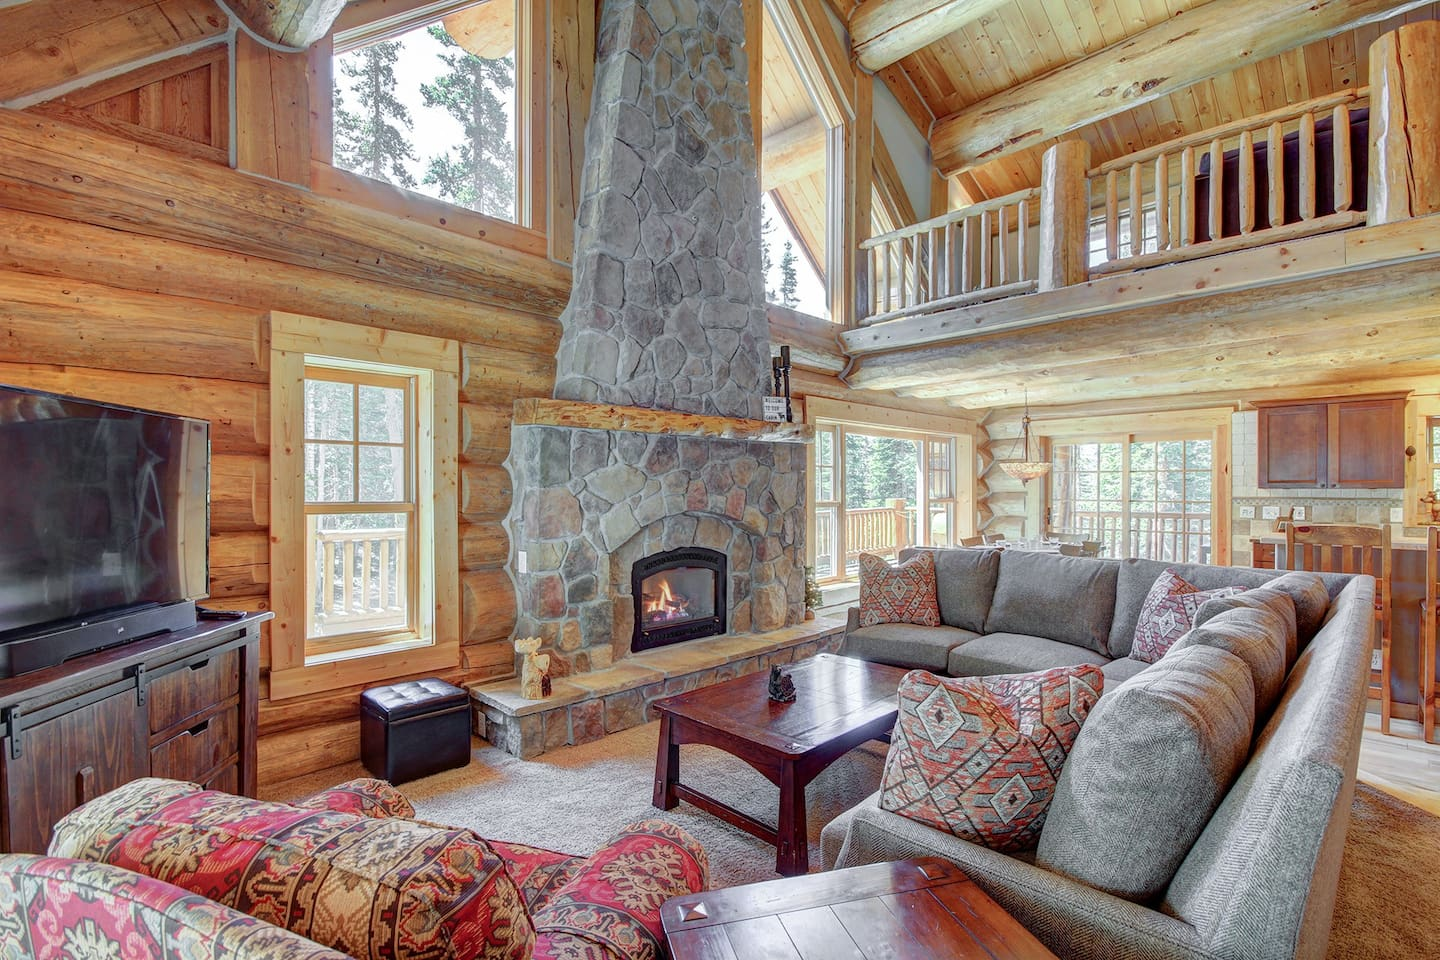 Timber Ridge Lodge - a SkyRun Breckenridge Property - Spacious living room with gas fireplace and flat screen TV